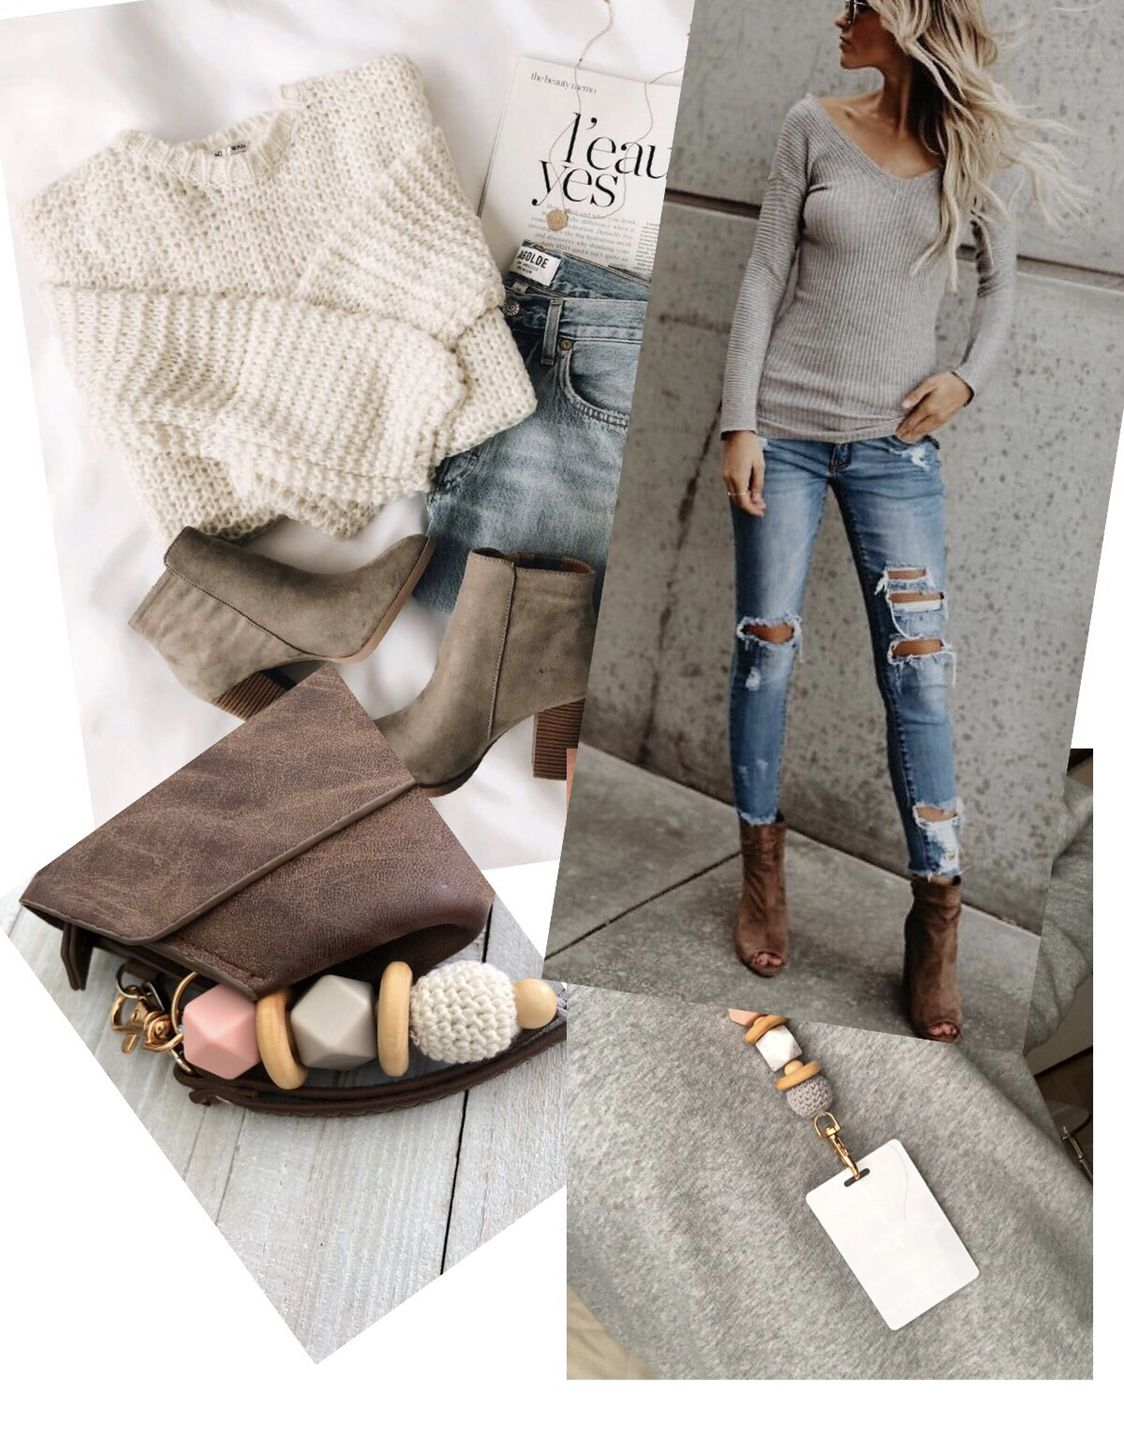 407589cd34c Lanyard necklace and keychains for fashion trendy women! outfit ideas💕For  outfit visit Lulus accessories visit Joule Grace